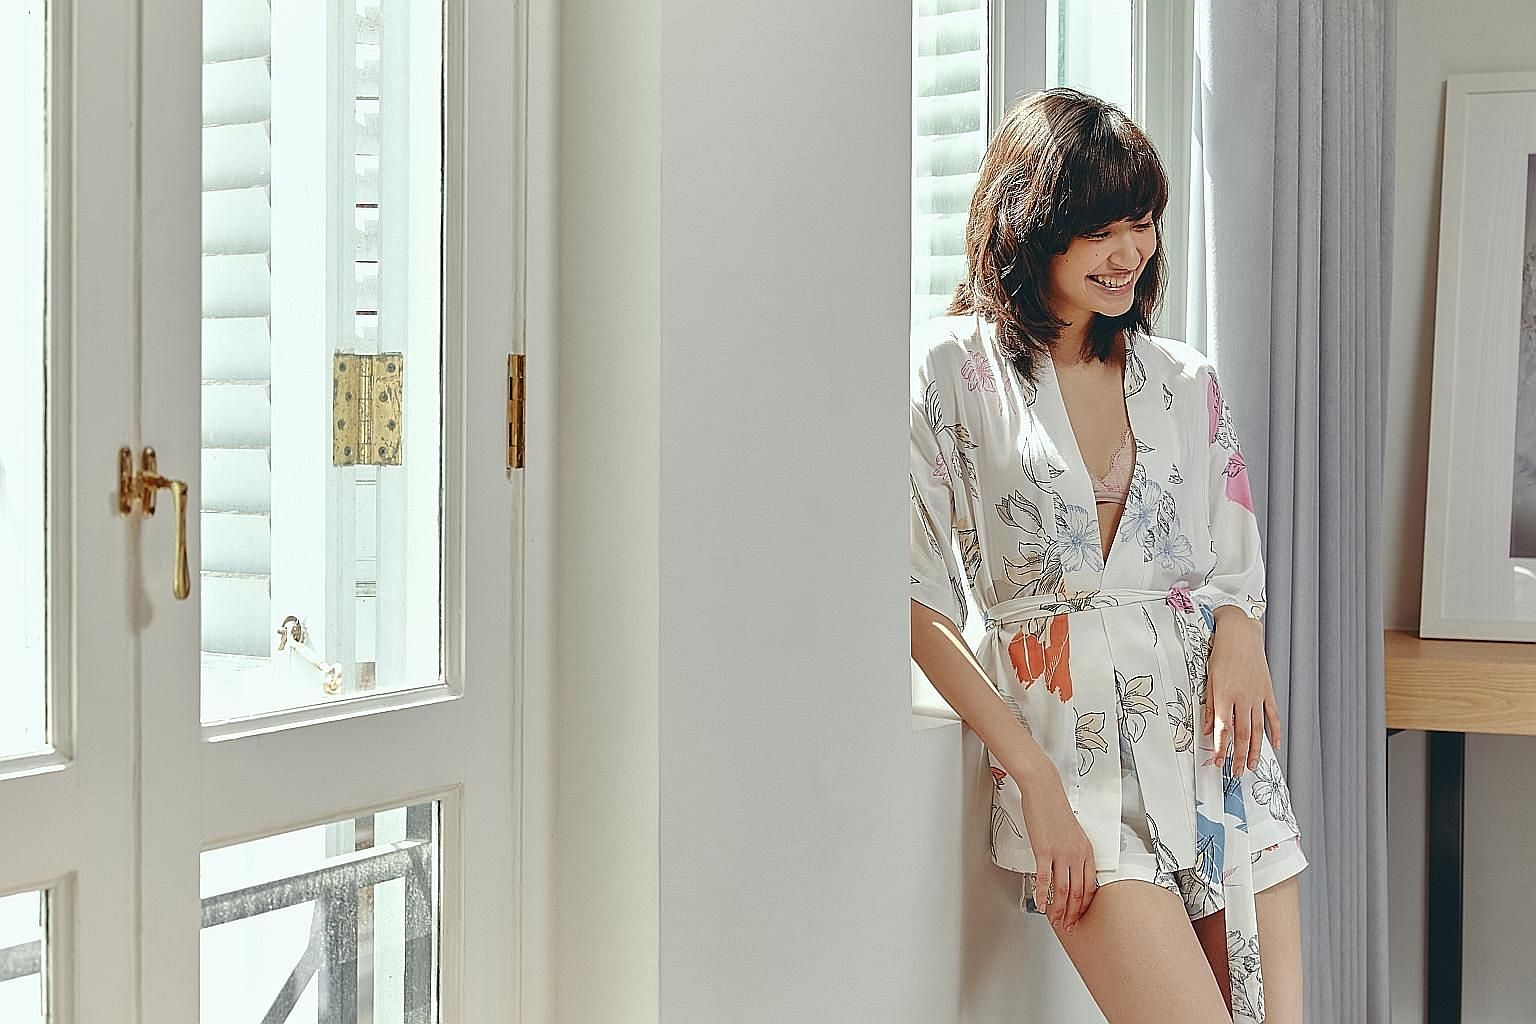 Home-grown label Love, Bonito's loungewear collection comprises separates like kimonos (above) and camisole tops.